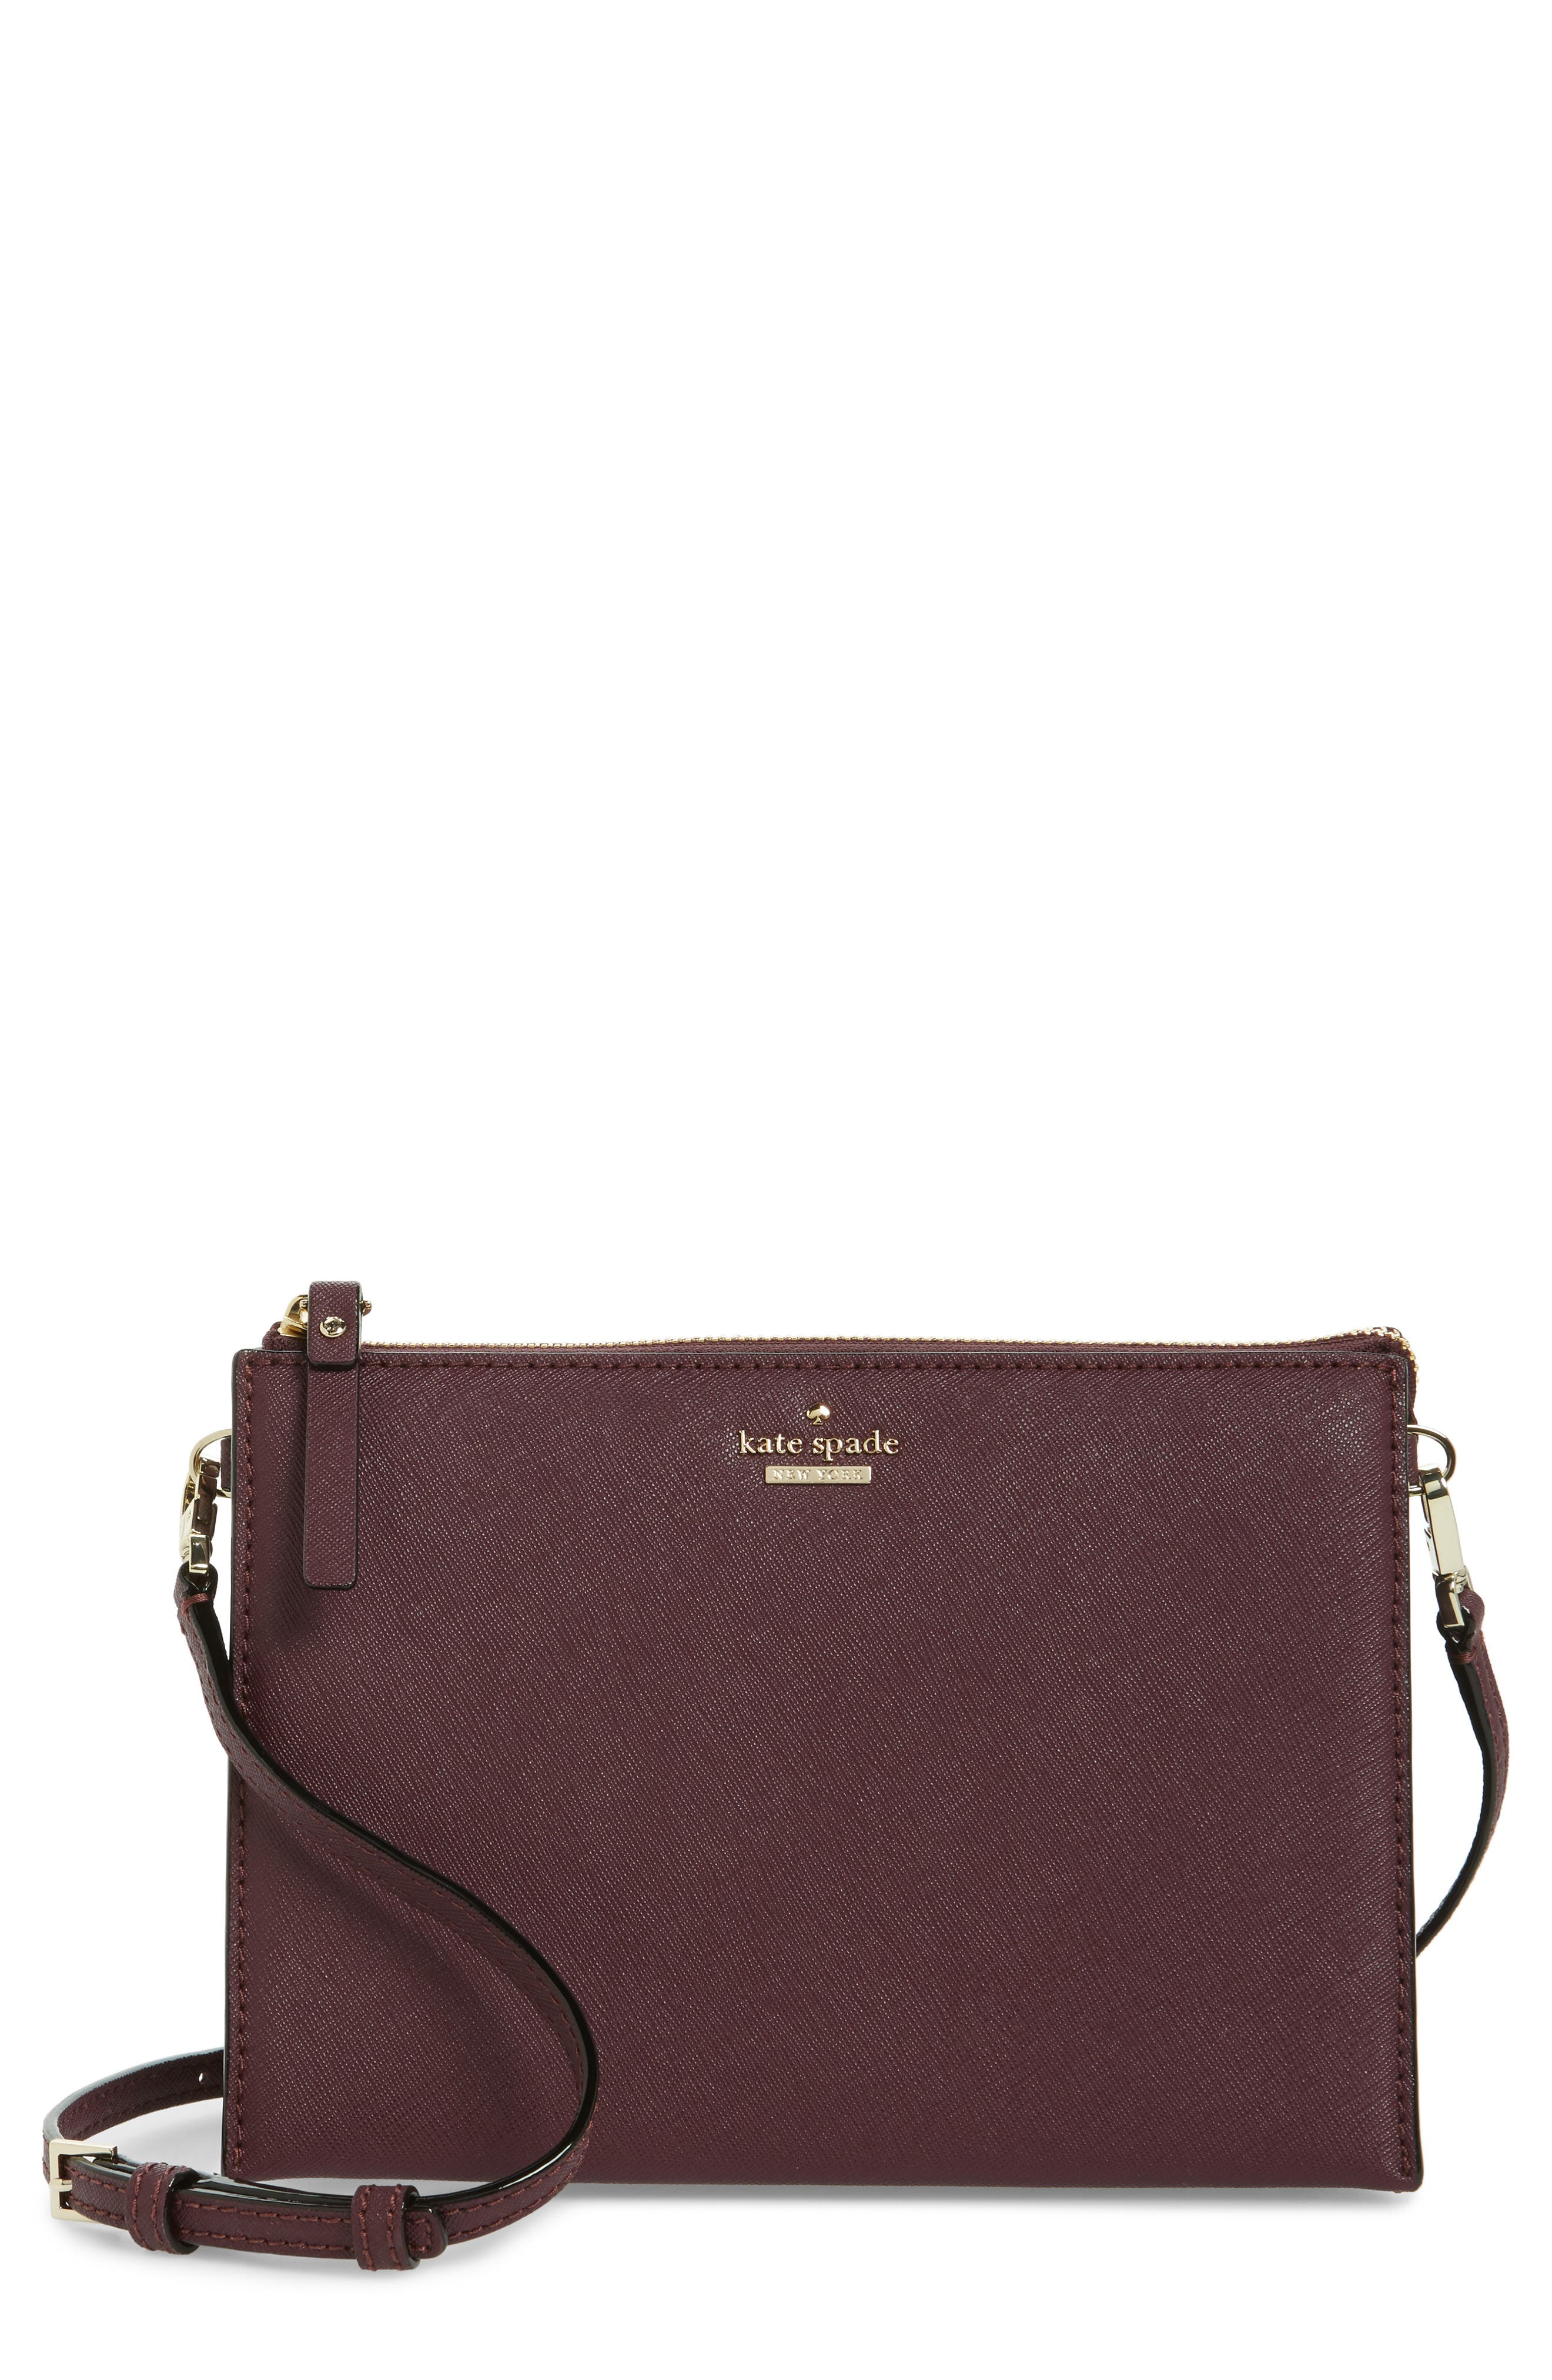 Alternate Image 1 Selected - kate spade new york cameron street - dilon leather crossbody bag